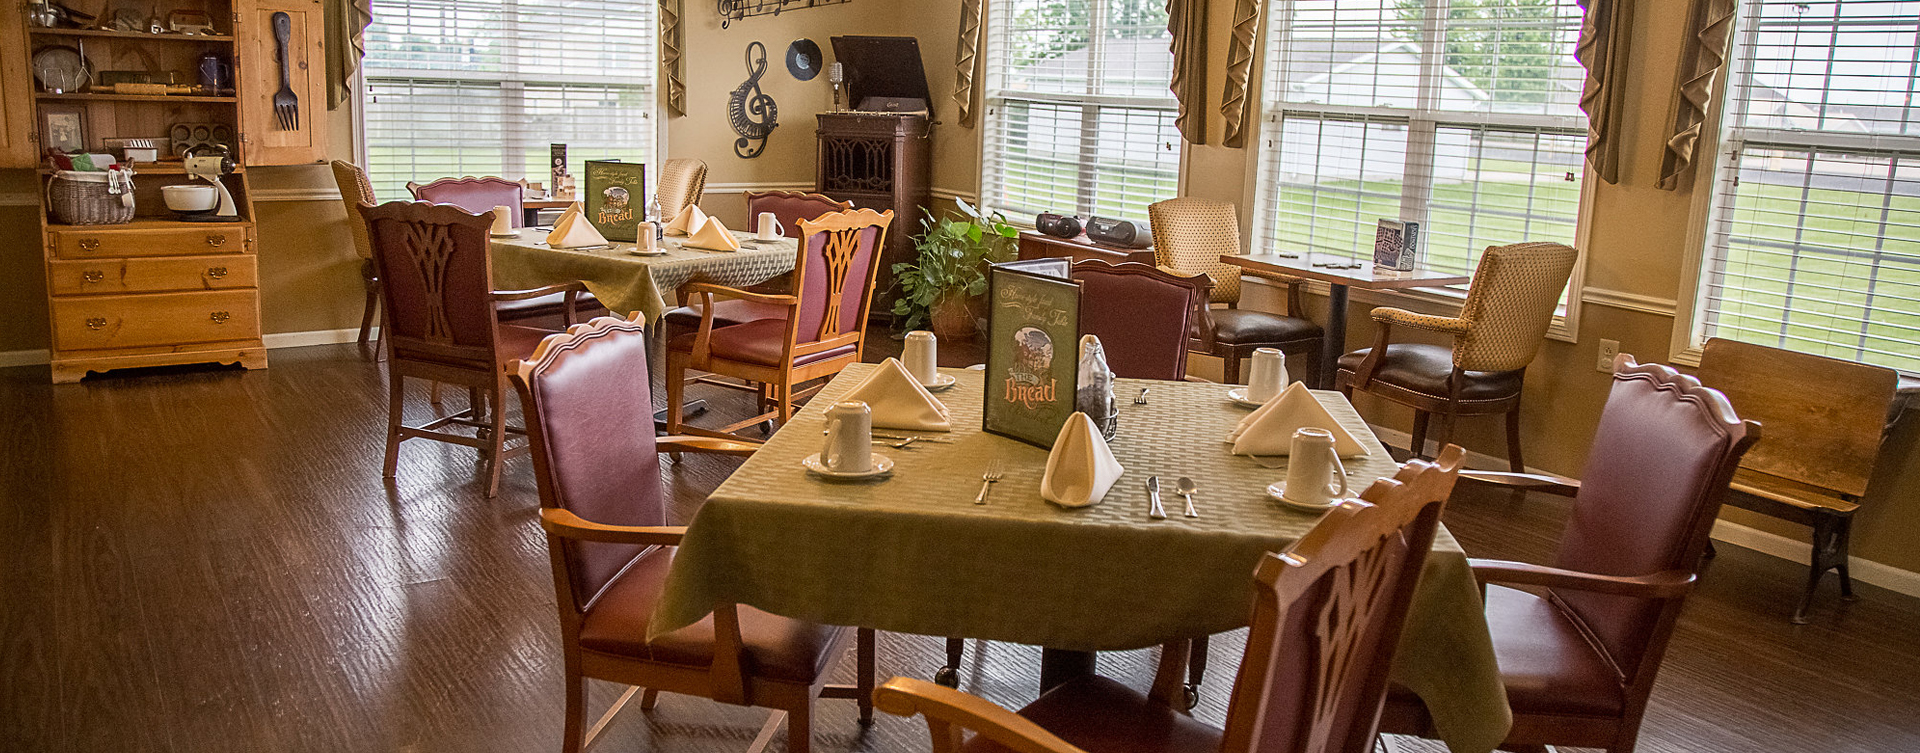 Mary B's country kitchen helps establish routines, creates activities and triggers a sense of meal time at Bickford of Burlington